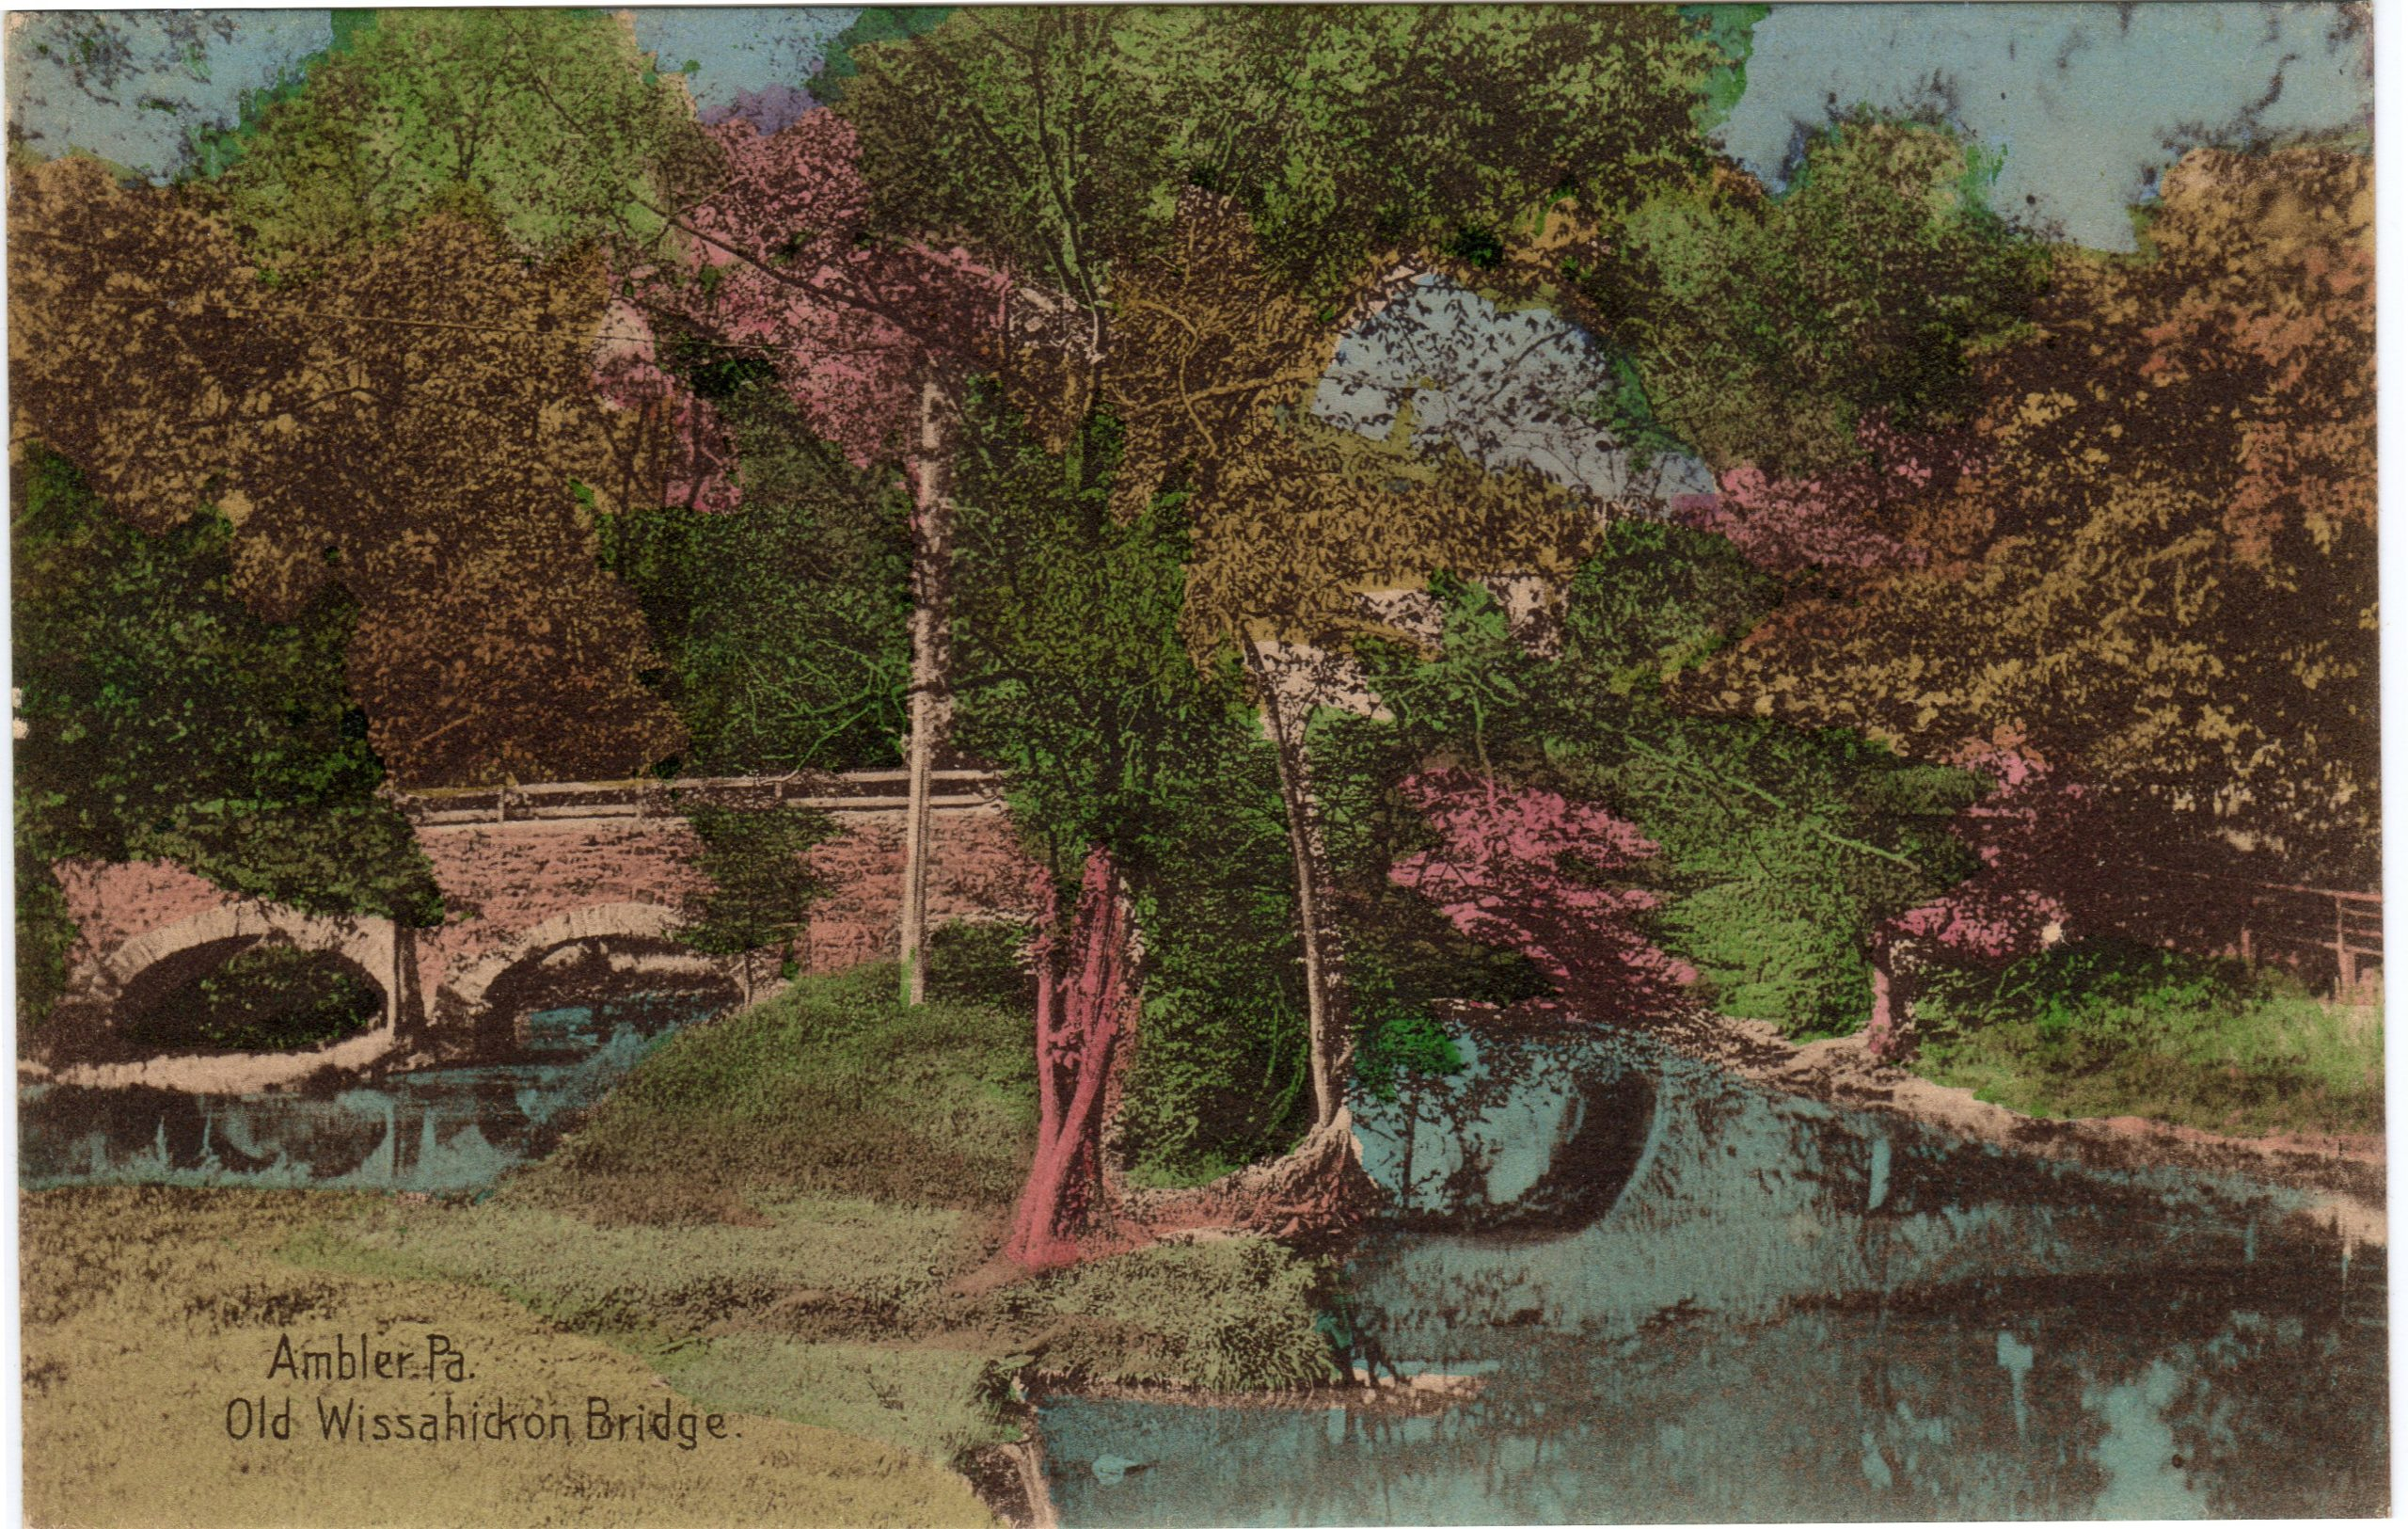 4125.36 Ambler Pa Postcard_Old Wissahickon Bridge